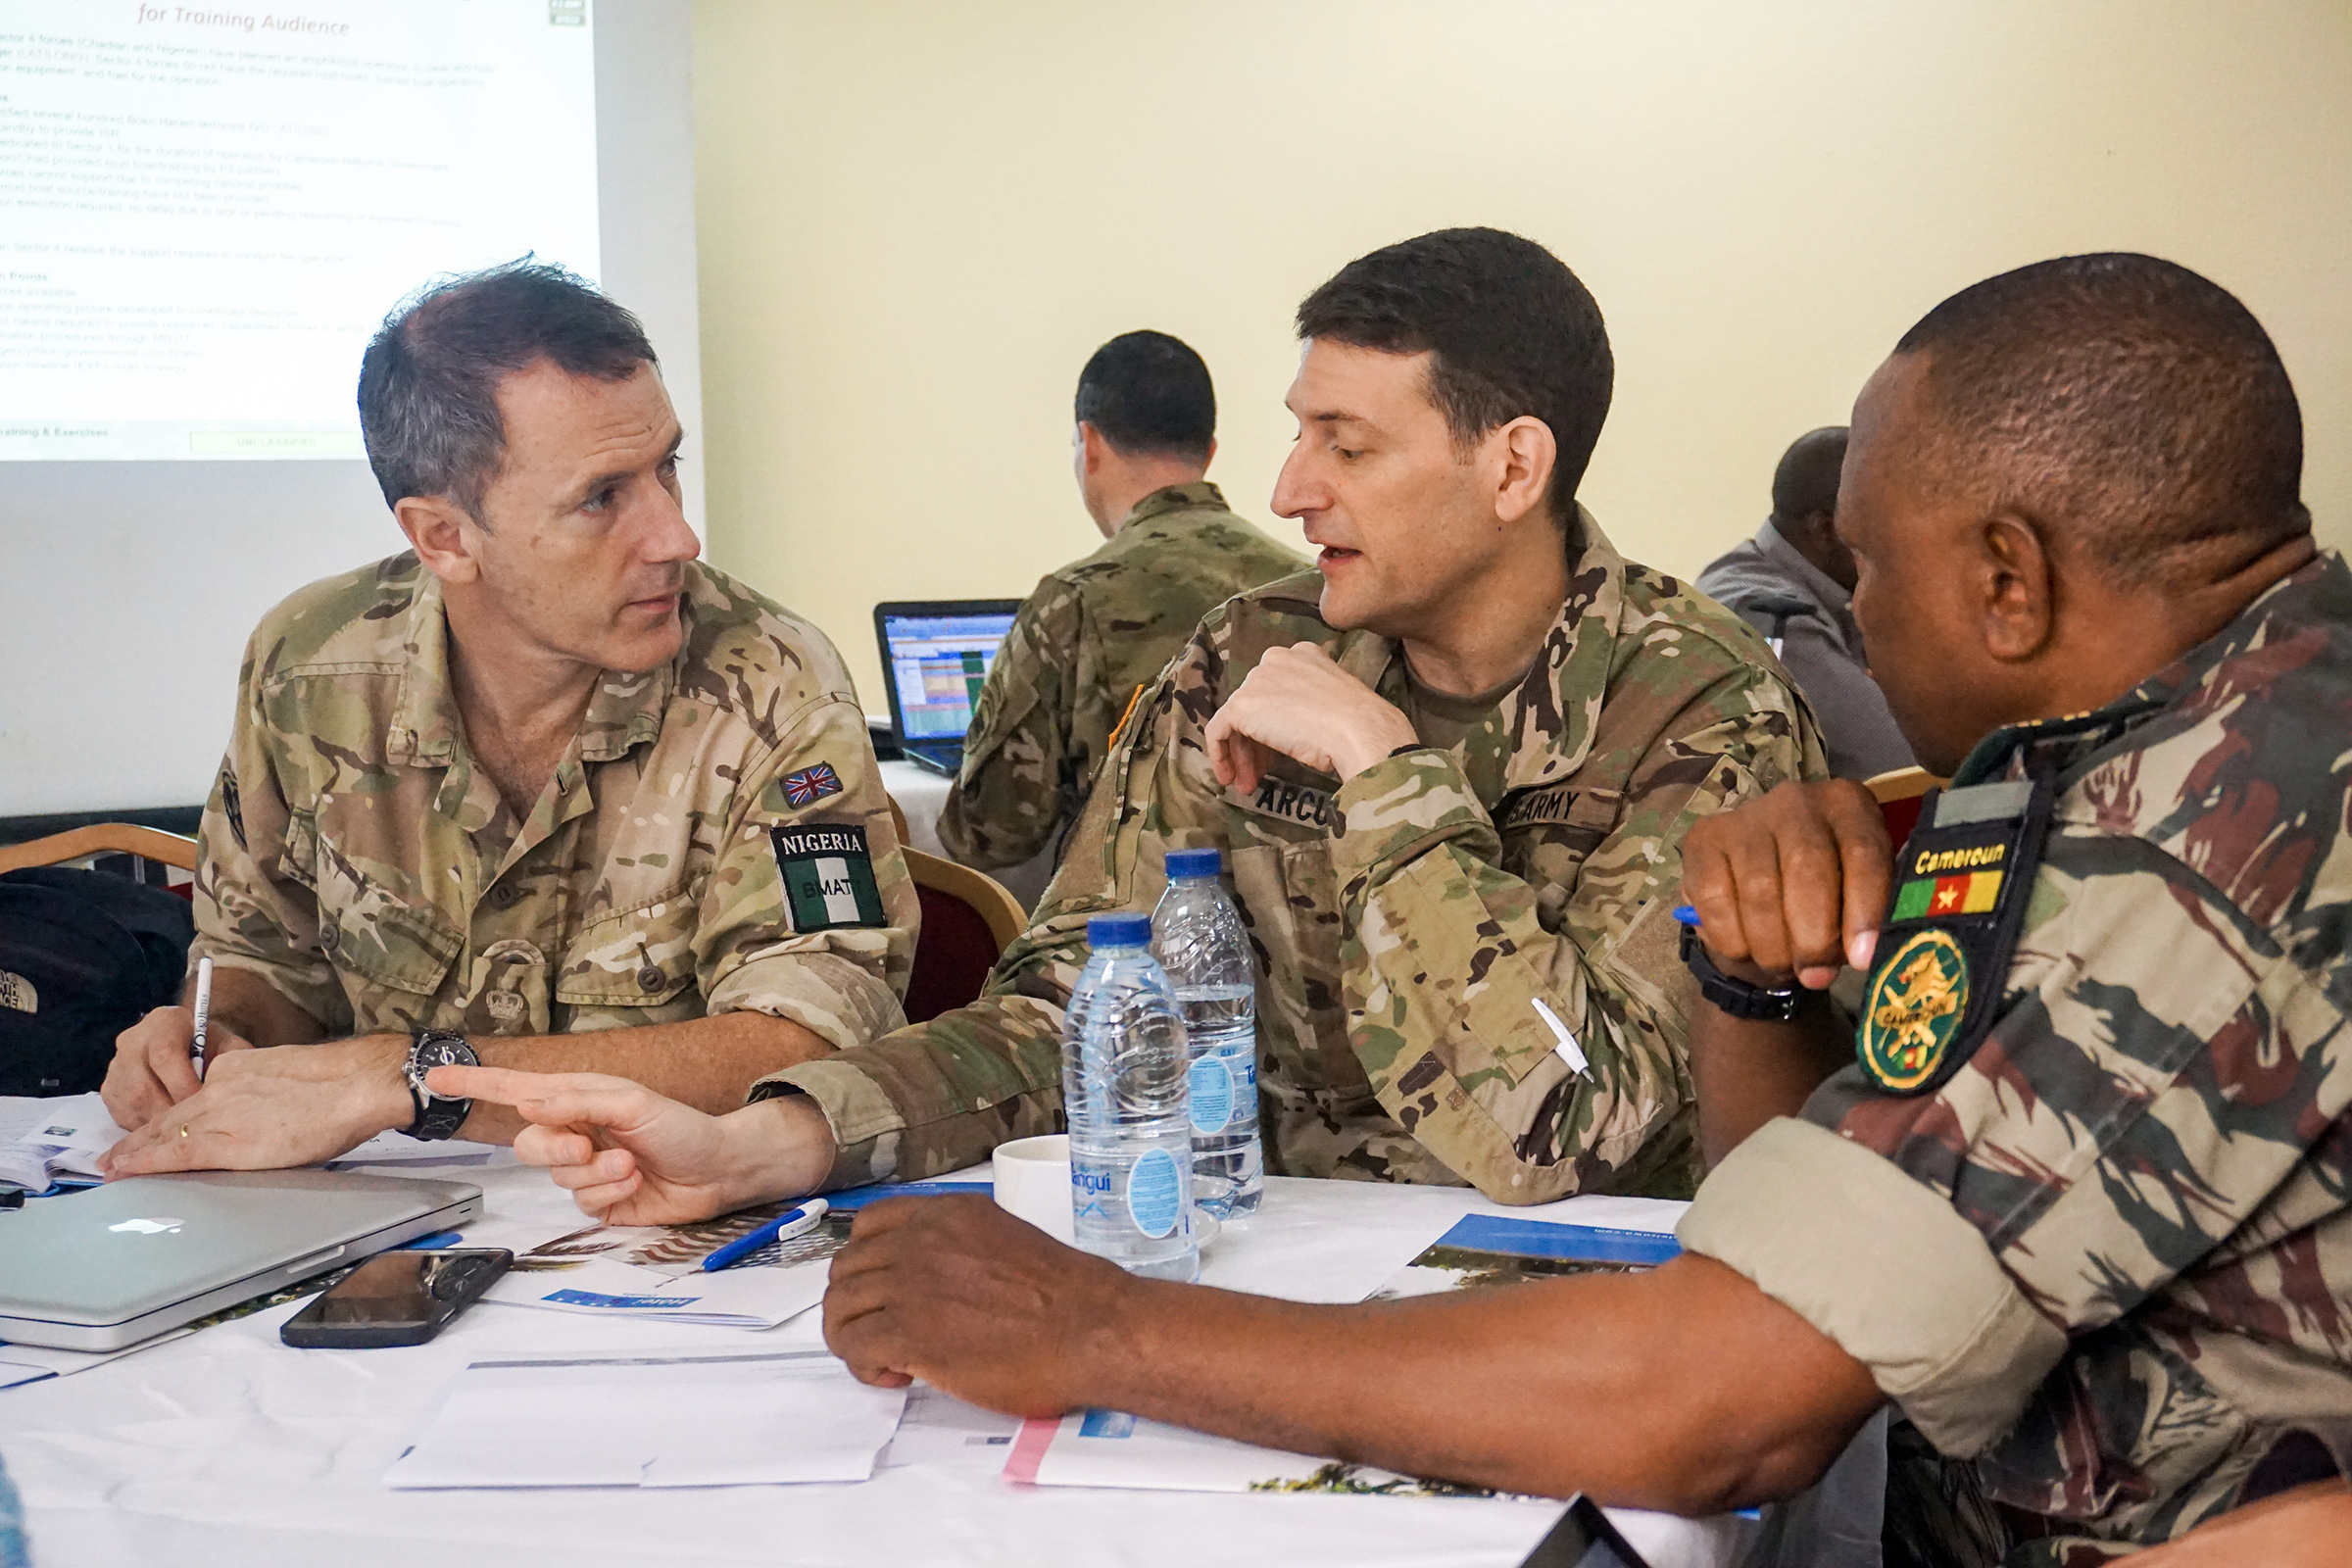 Planners discuss the details of each exercise scenario during the Unified Focus 2017 final planning event (FPE), Douala, Cameroon, Feb. 6, 2017. The UF17 FPE brought partner nation planners together to discuss and shape the inaugural Unified Focus exercise designed to enhance and enable Lake Chad Basin Commission nations to support the Multinational Joint Task Force (MNJTF) counter-Boko Haram operations. (U.S. Army Africa photo by Capt. Jason Welch/Released)